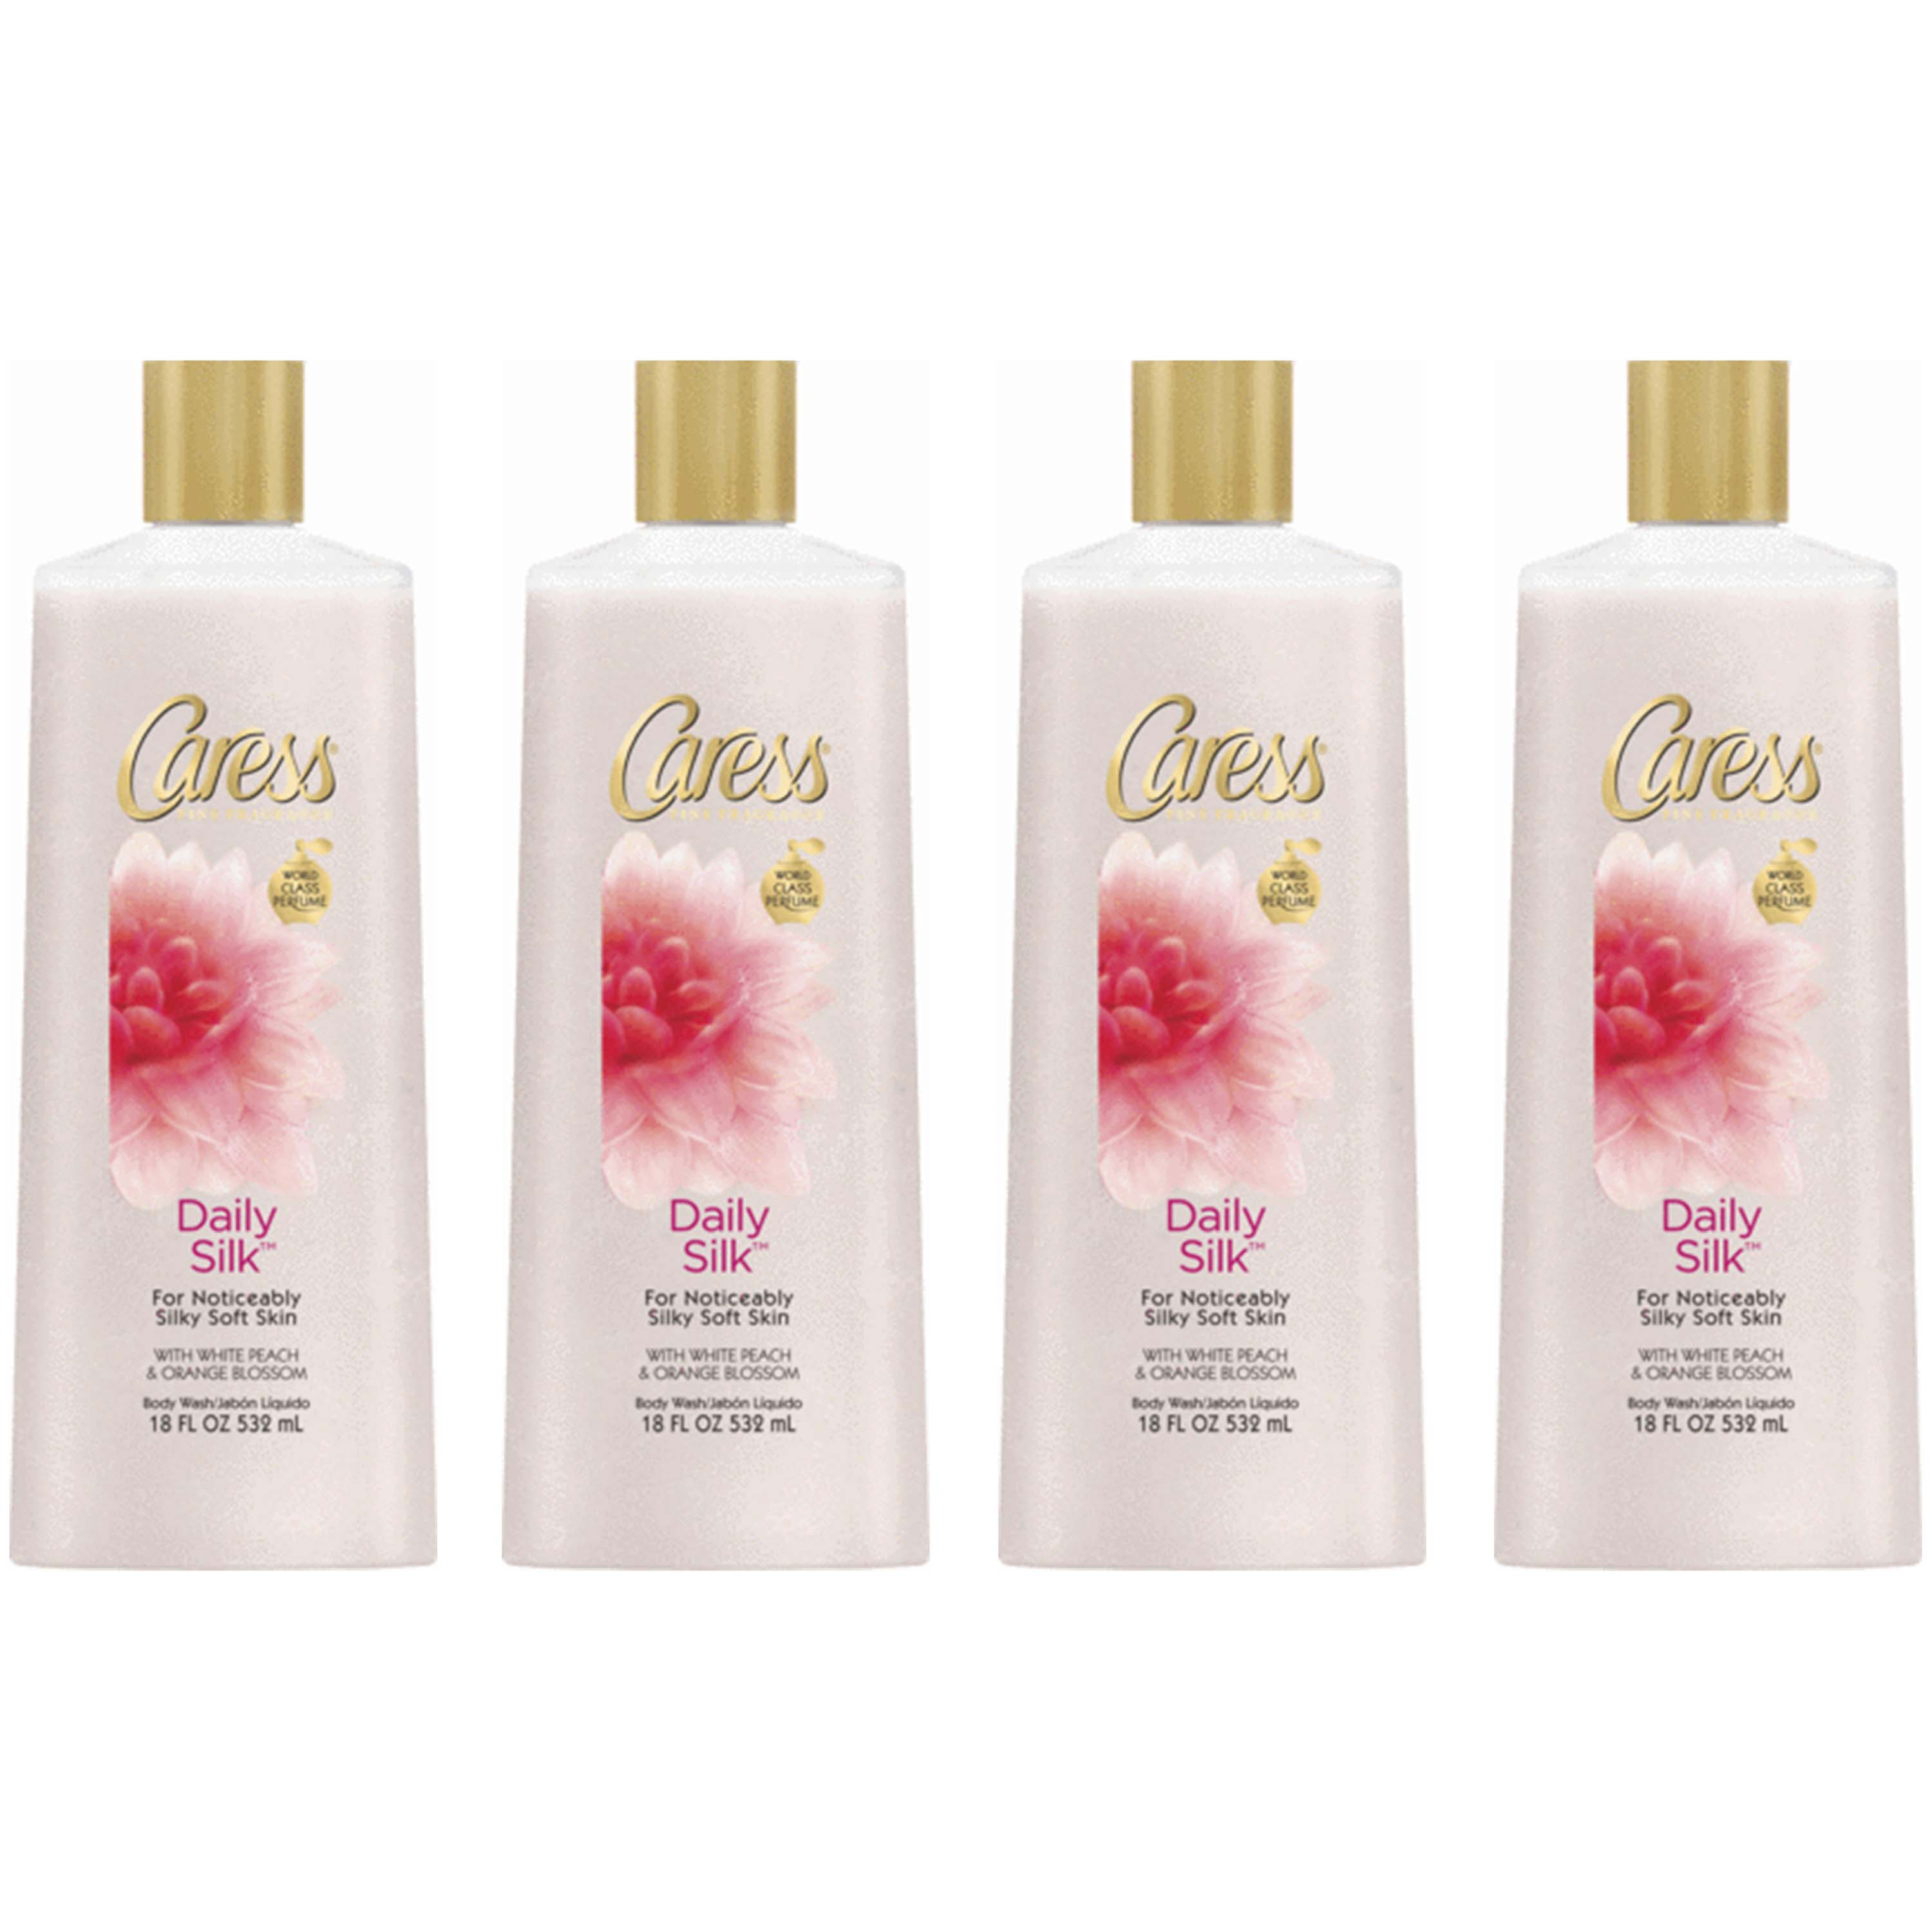 Caress Daily Silk Body Wash, 18 oz, 4 Count